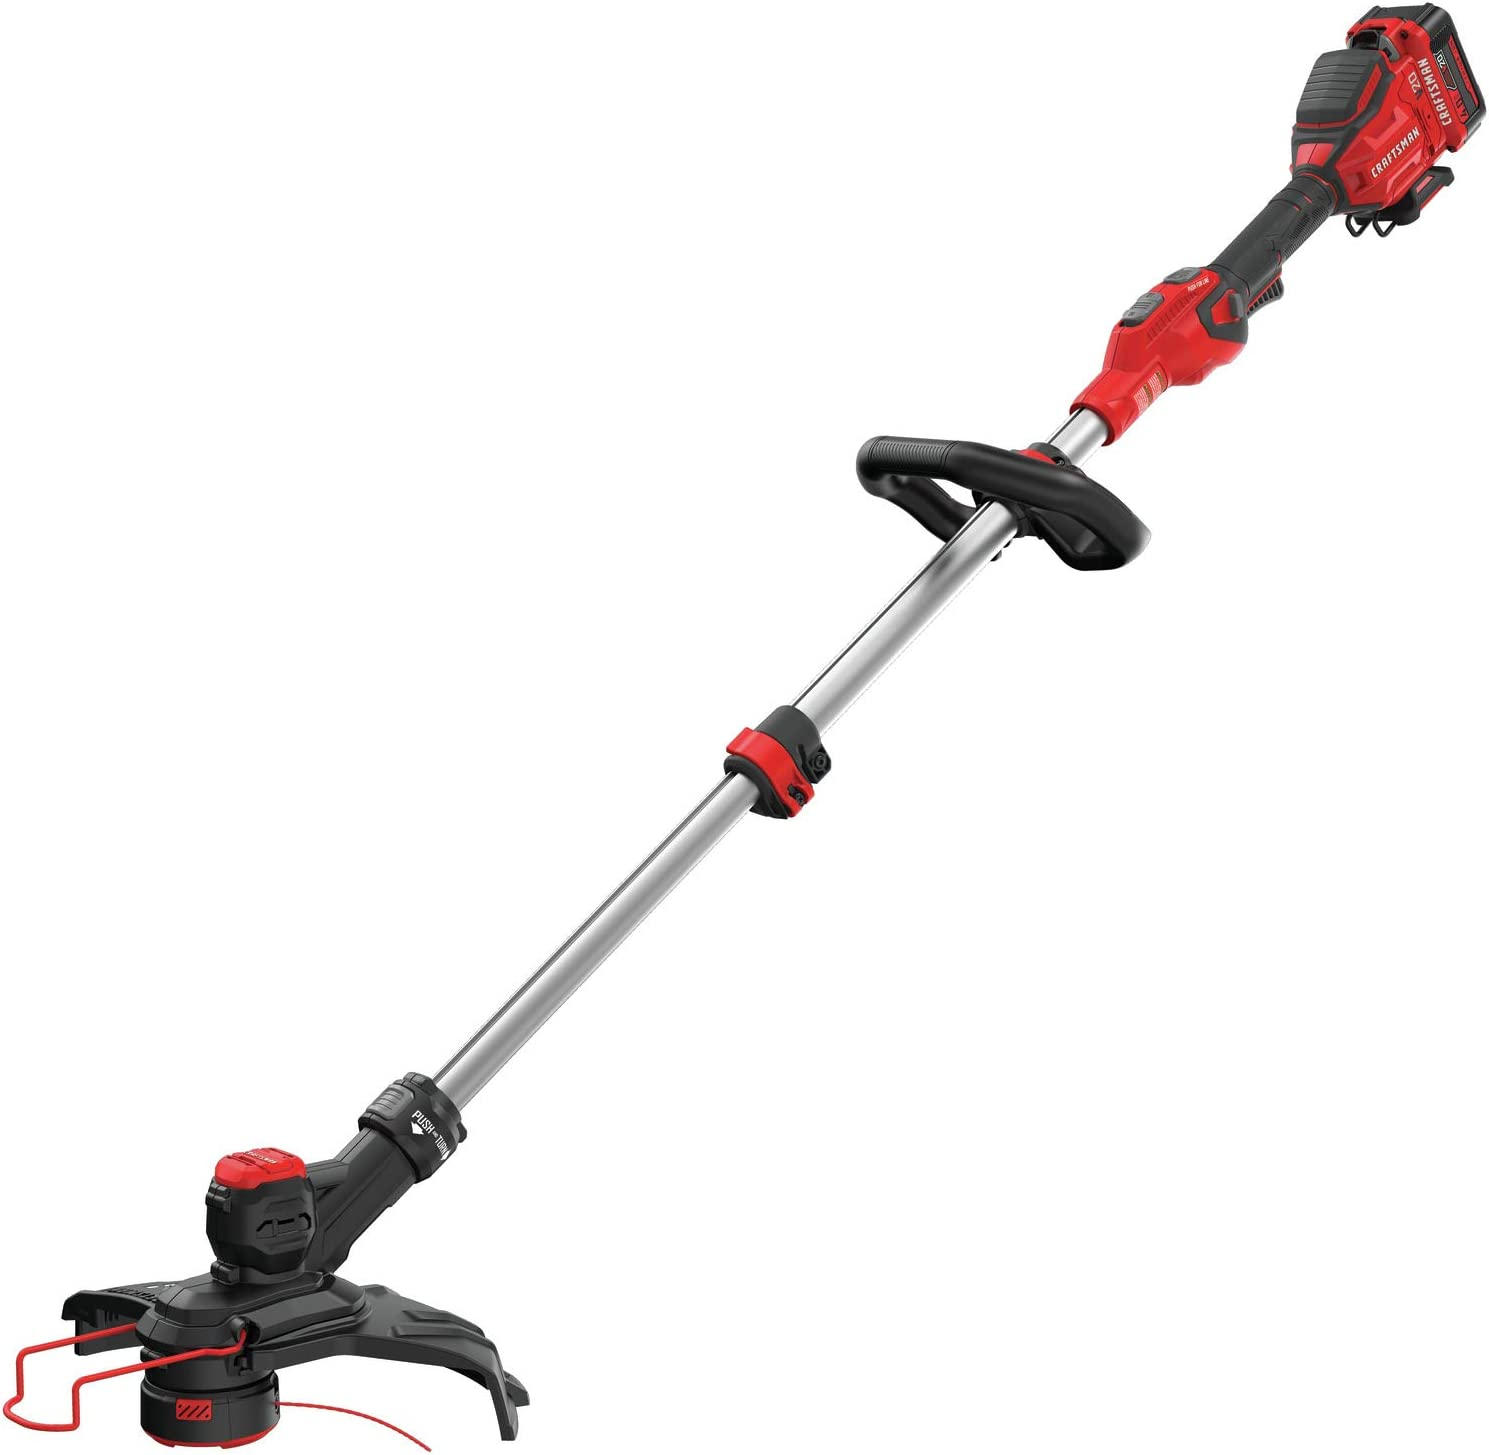 Craftsman V20 String Trimmer / Edger